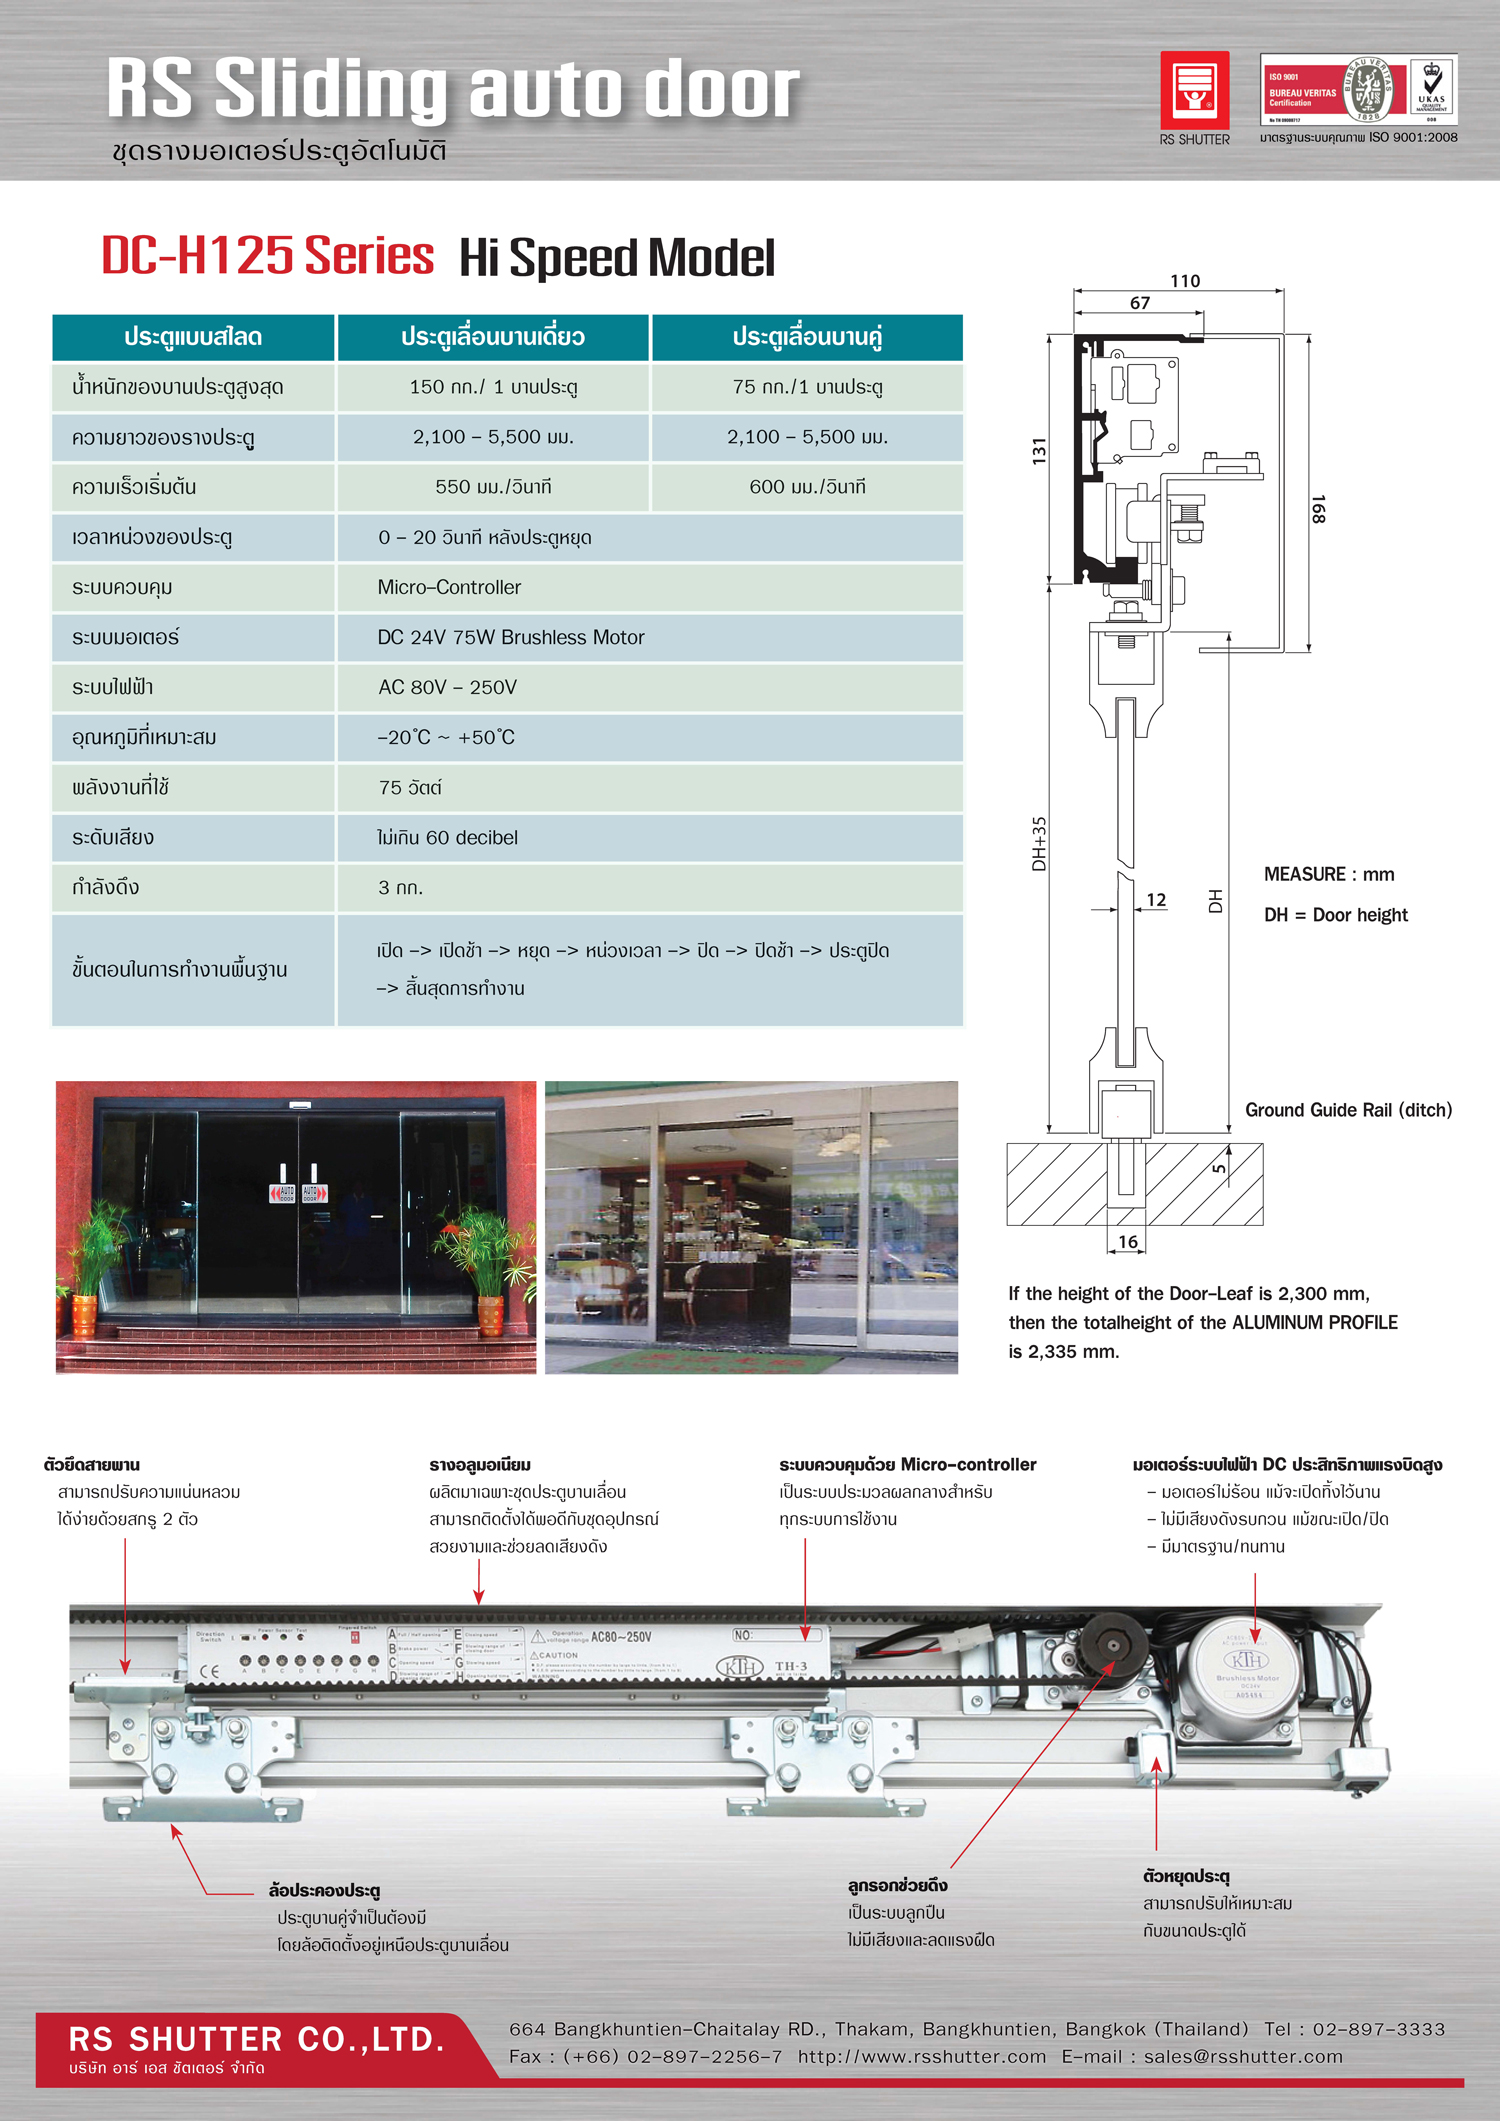 Catalog RS Sliding auto door